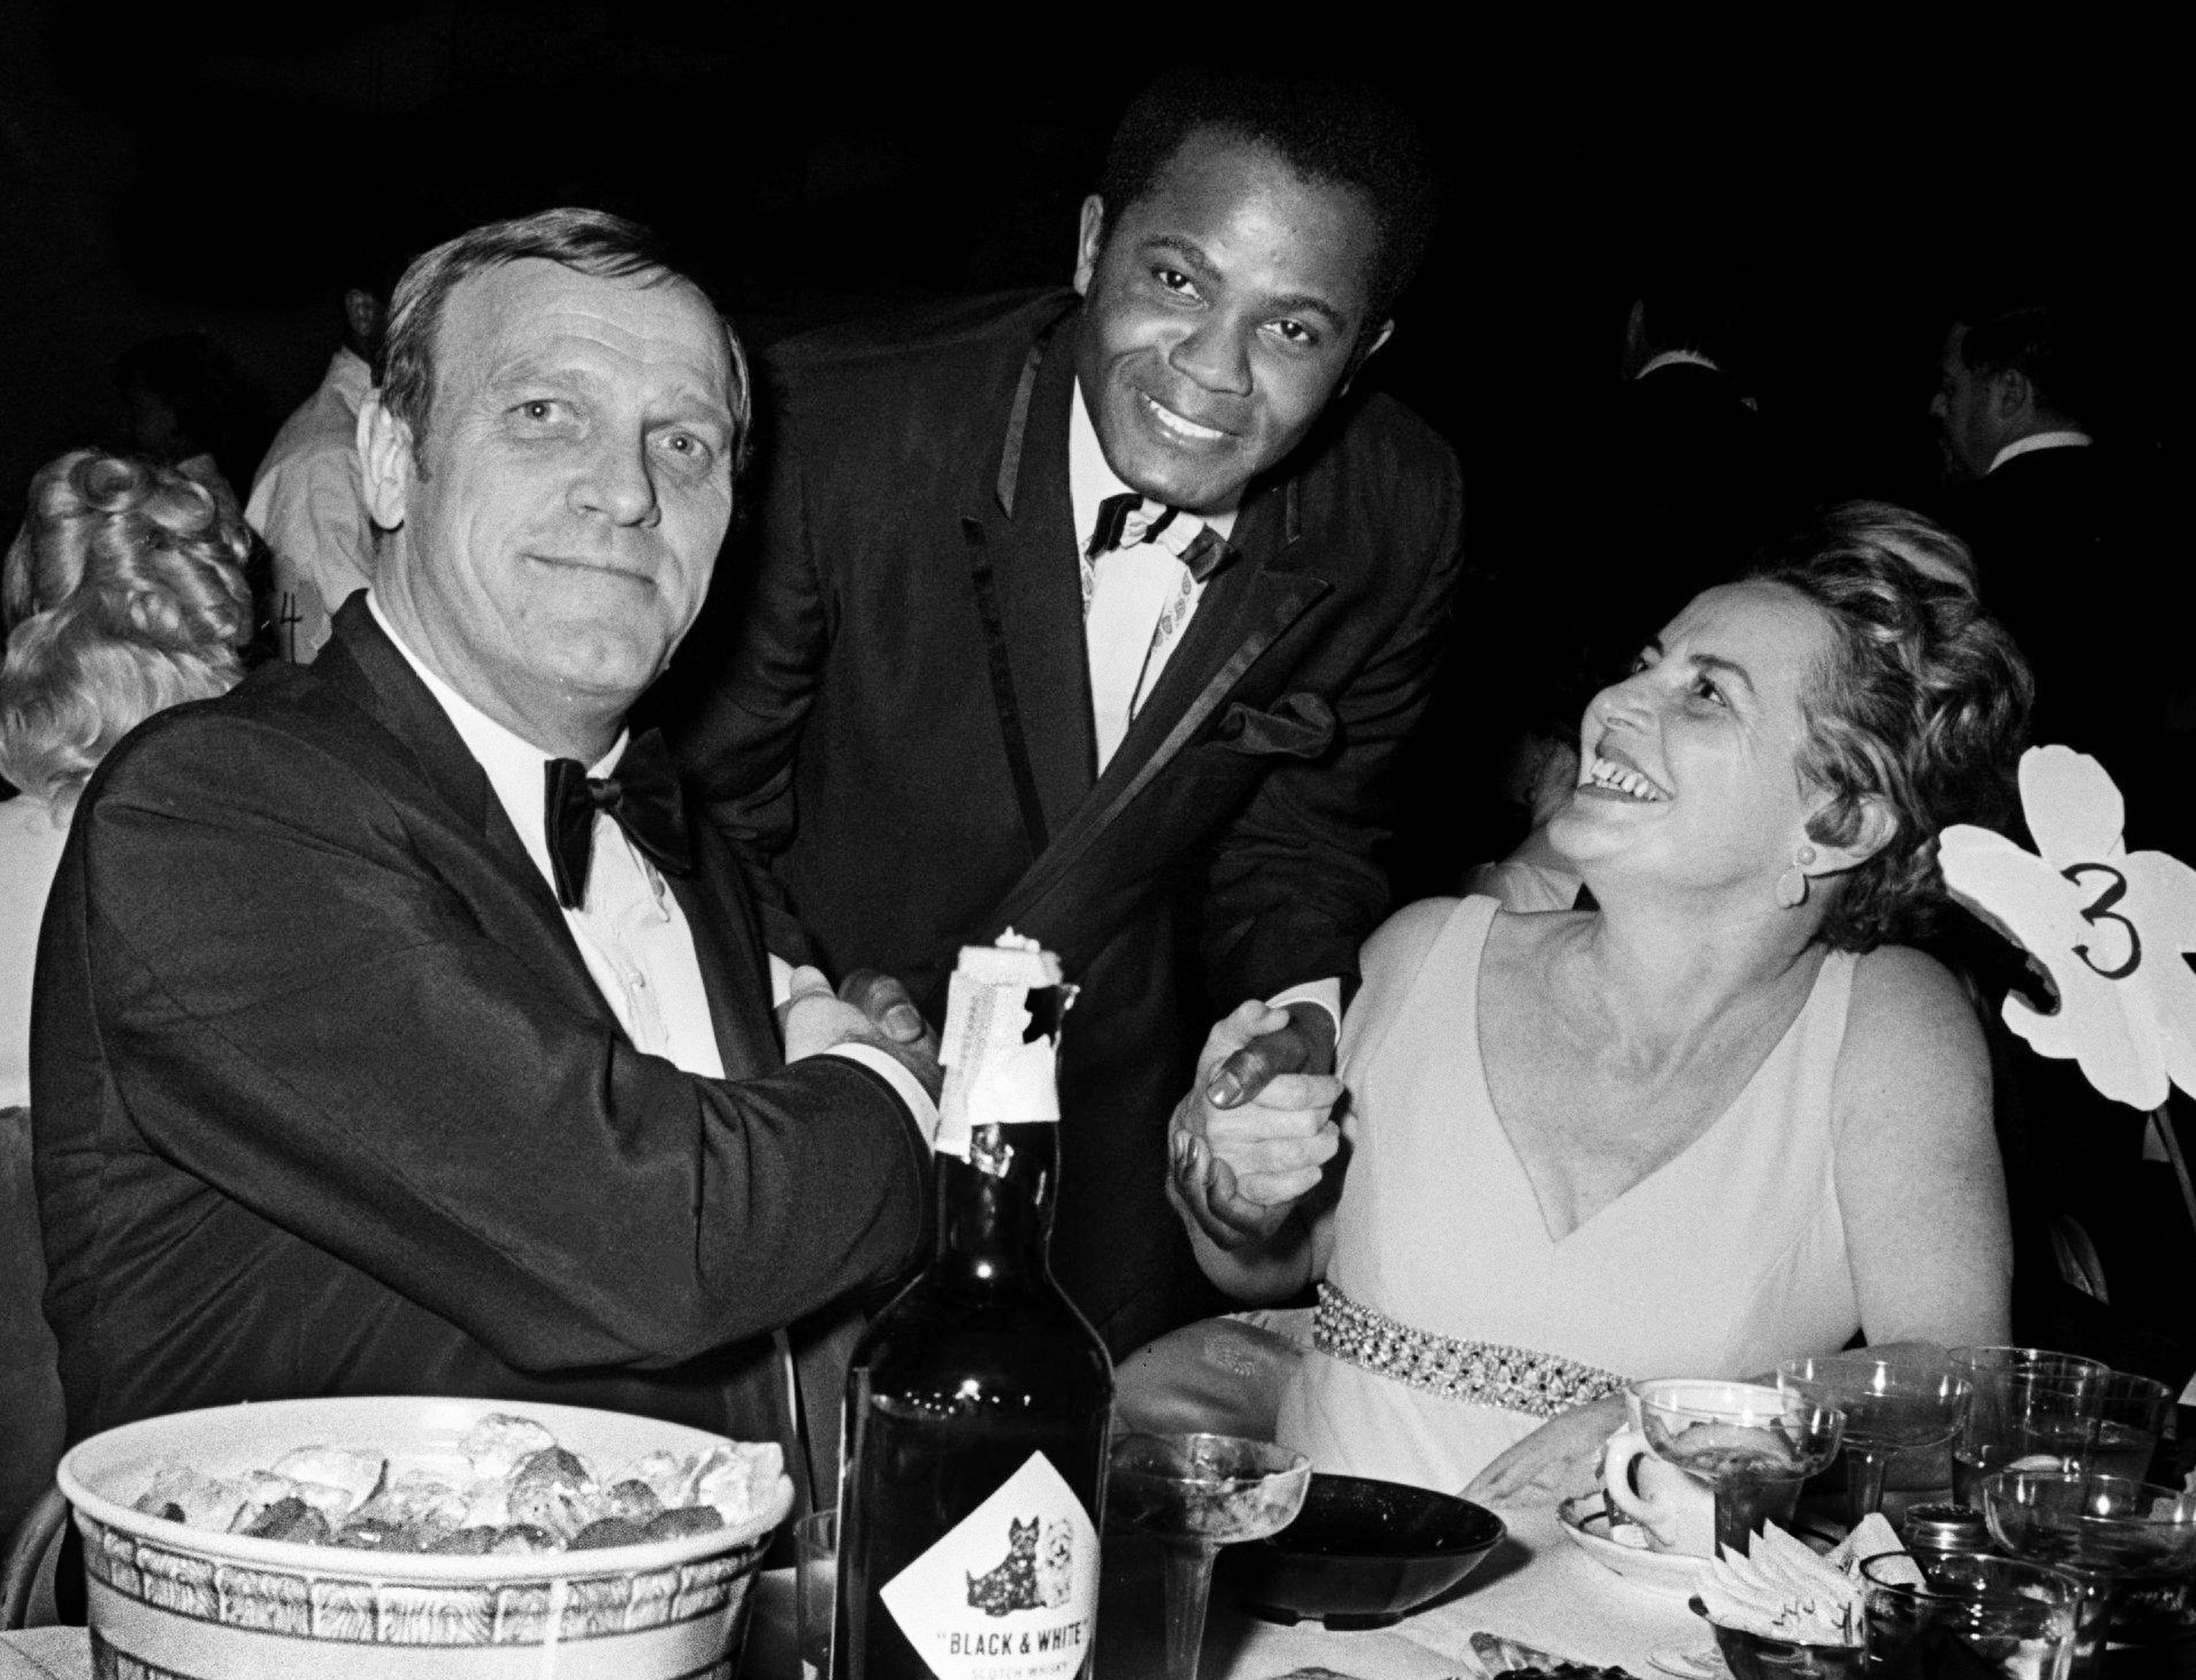 Eddy Arnold, left, and his wife Sally, right, greet another guest during the NARAS annual gala awards celebration for the Grammy at the National Guard Armory in Nashville March 12, 1969. Arnold presented one of the performers during the show.